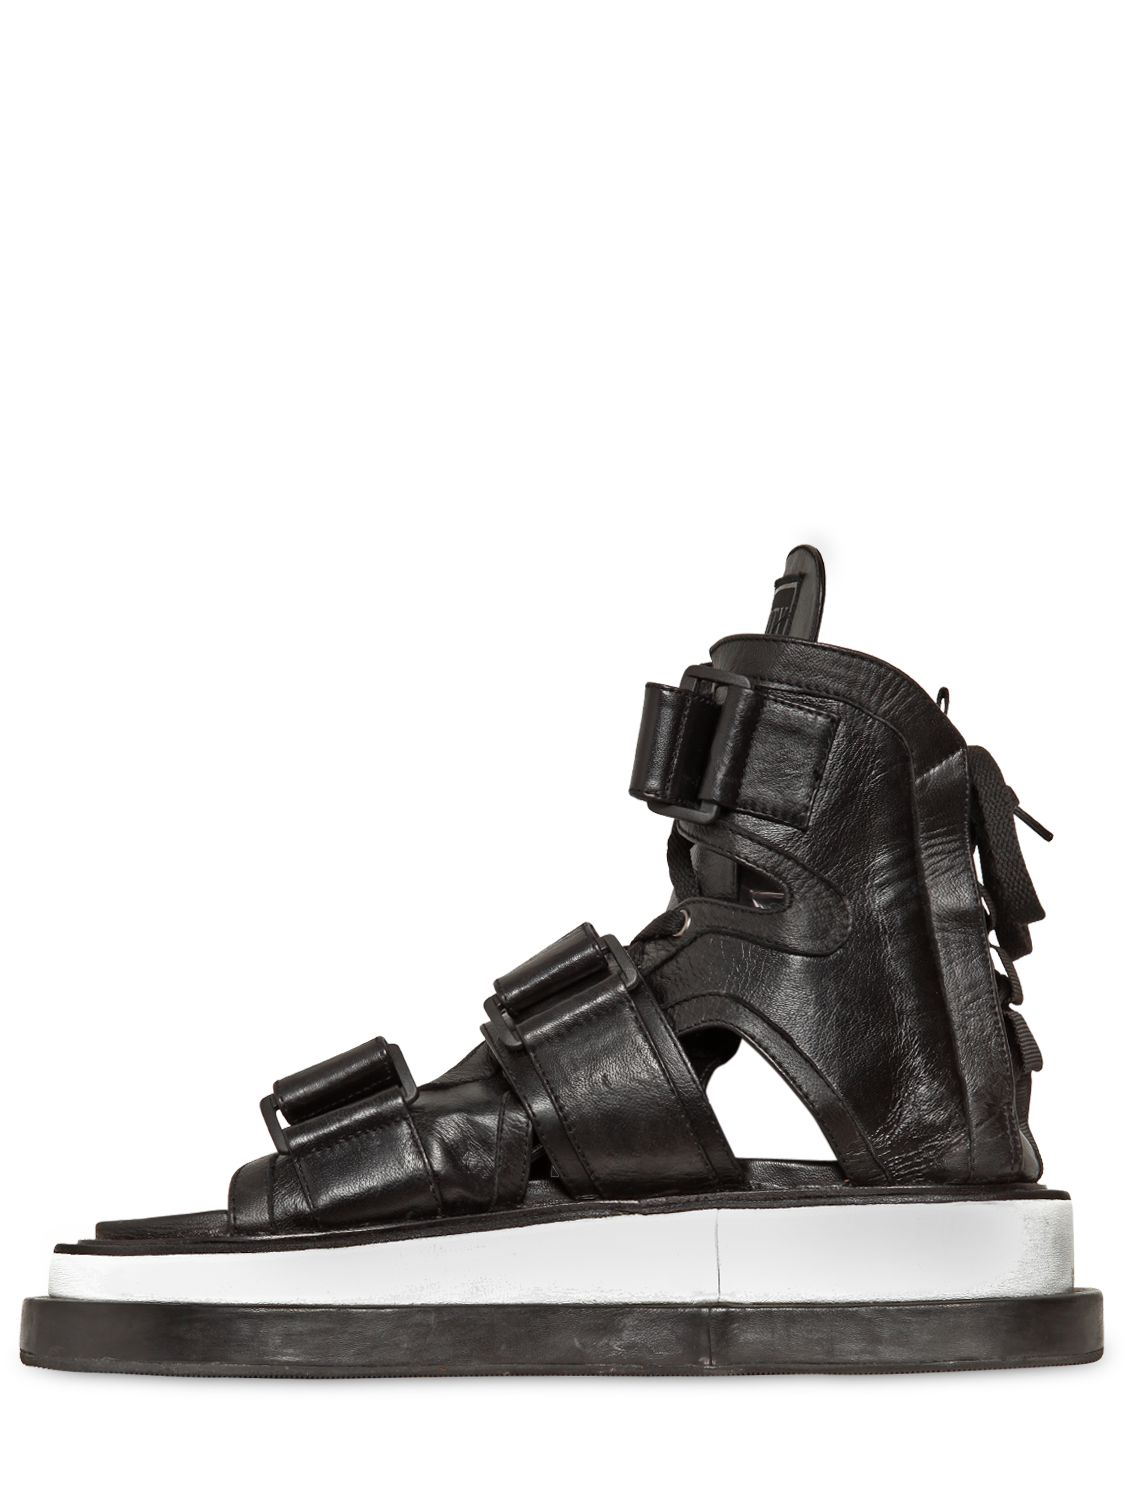 Ktz Gladiator Leather Sandals In Black For Men Lyst